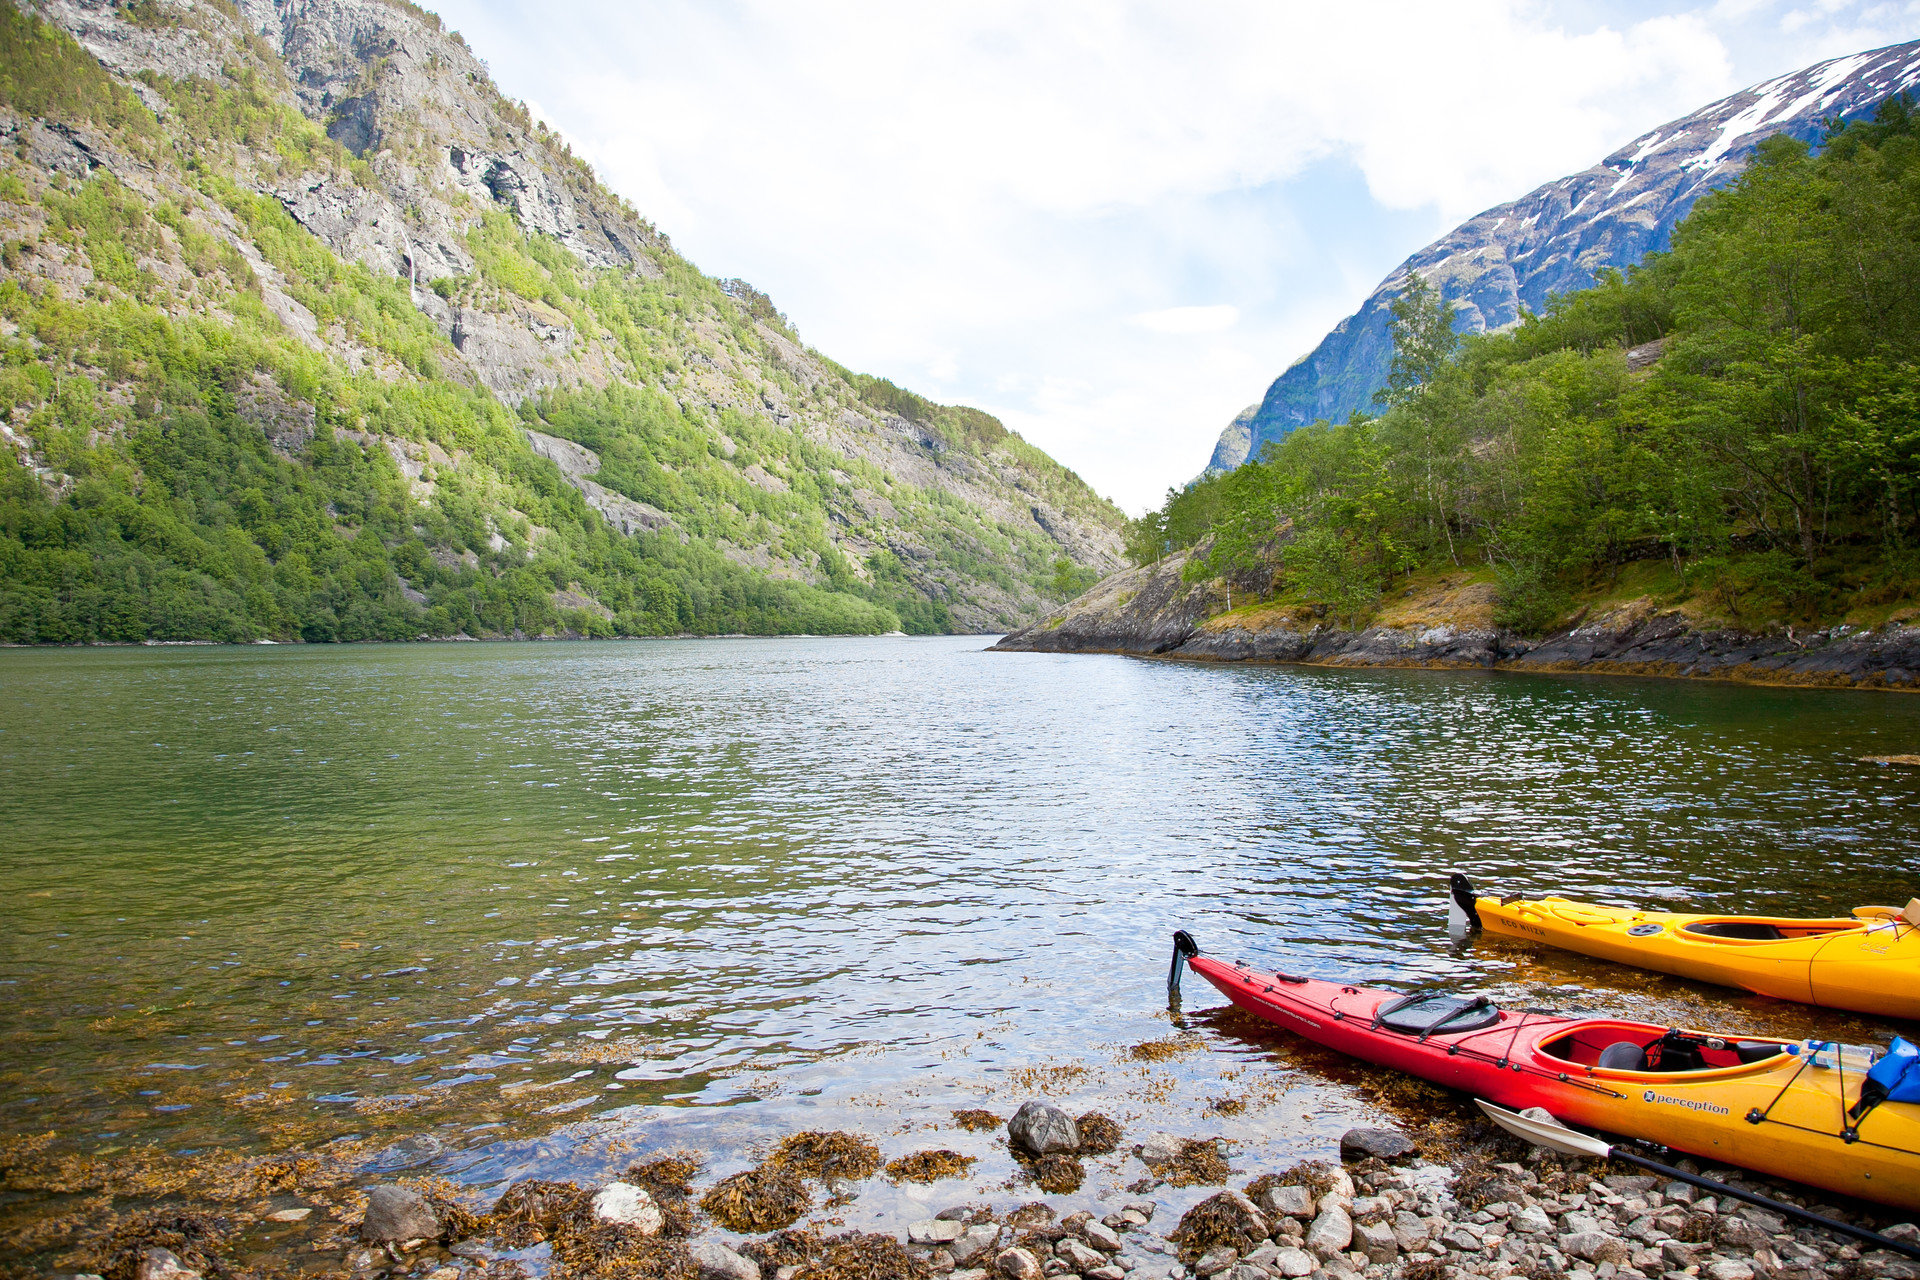 canoeing kayaking Lake Mountains Nature Outdoor Activities Outdoors Scenic views Trip Ideas view viewpoint outdoor water mountain Boat vehicle boating River watercraft transport loch fjord canoe kayak sports equipment